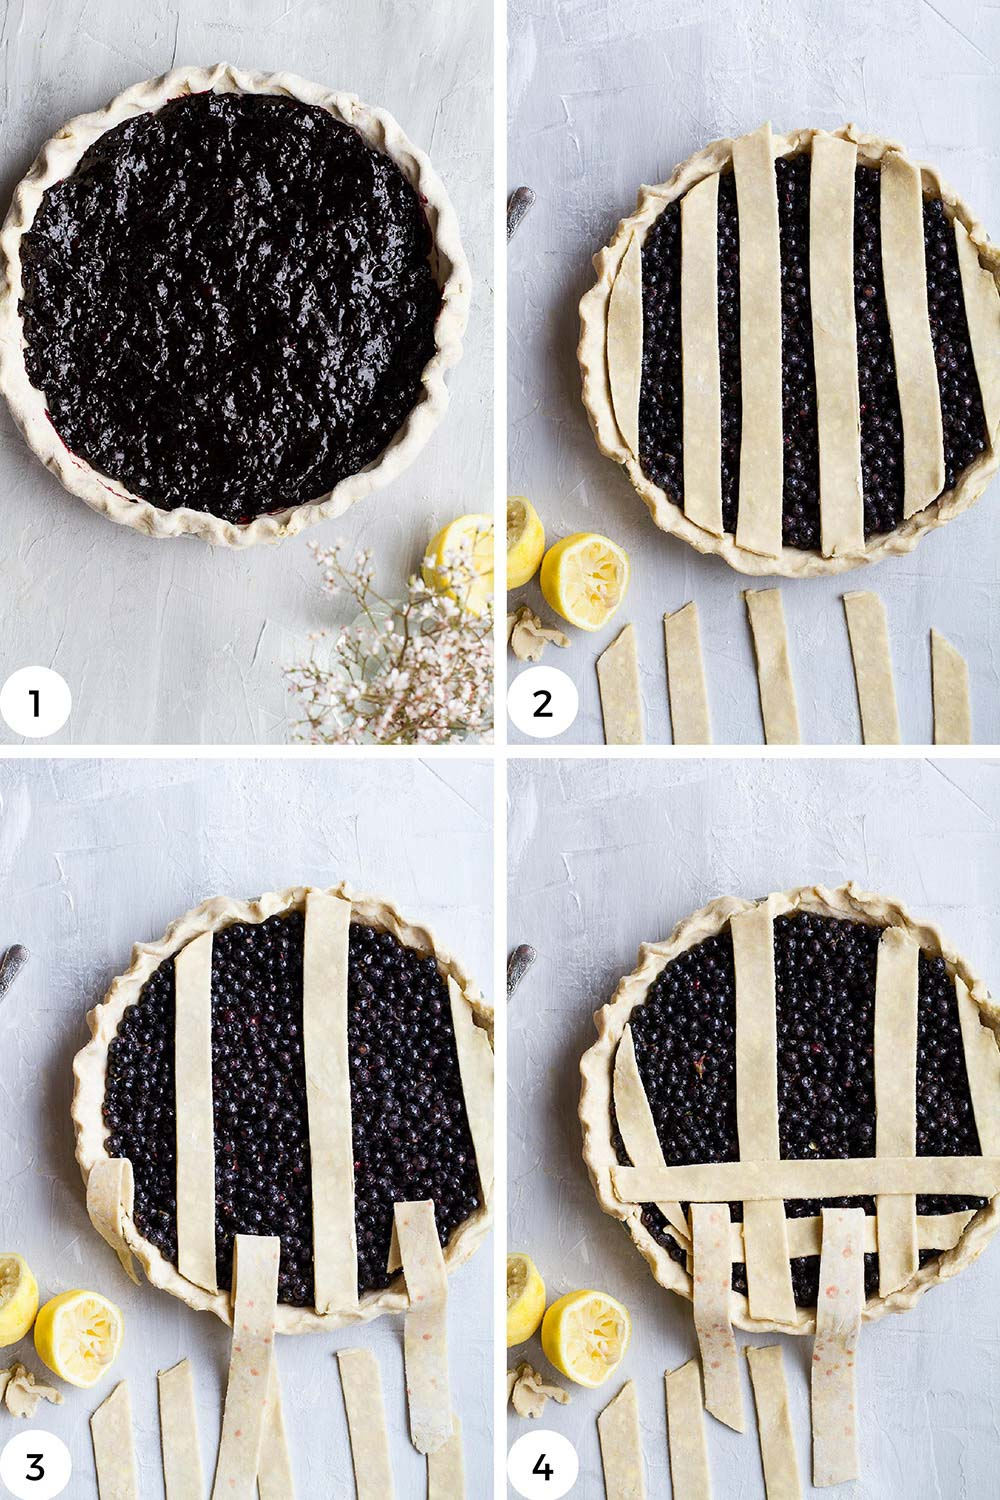 Steps to lattice the top of a pie.